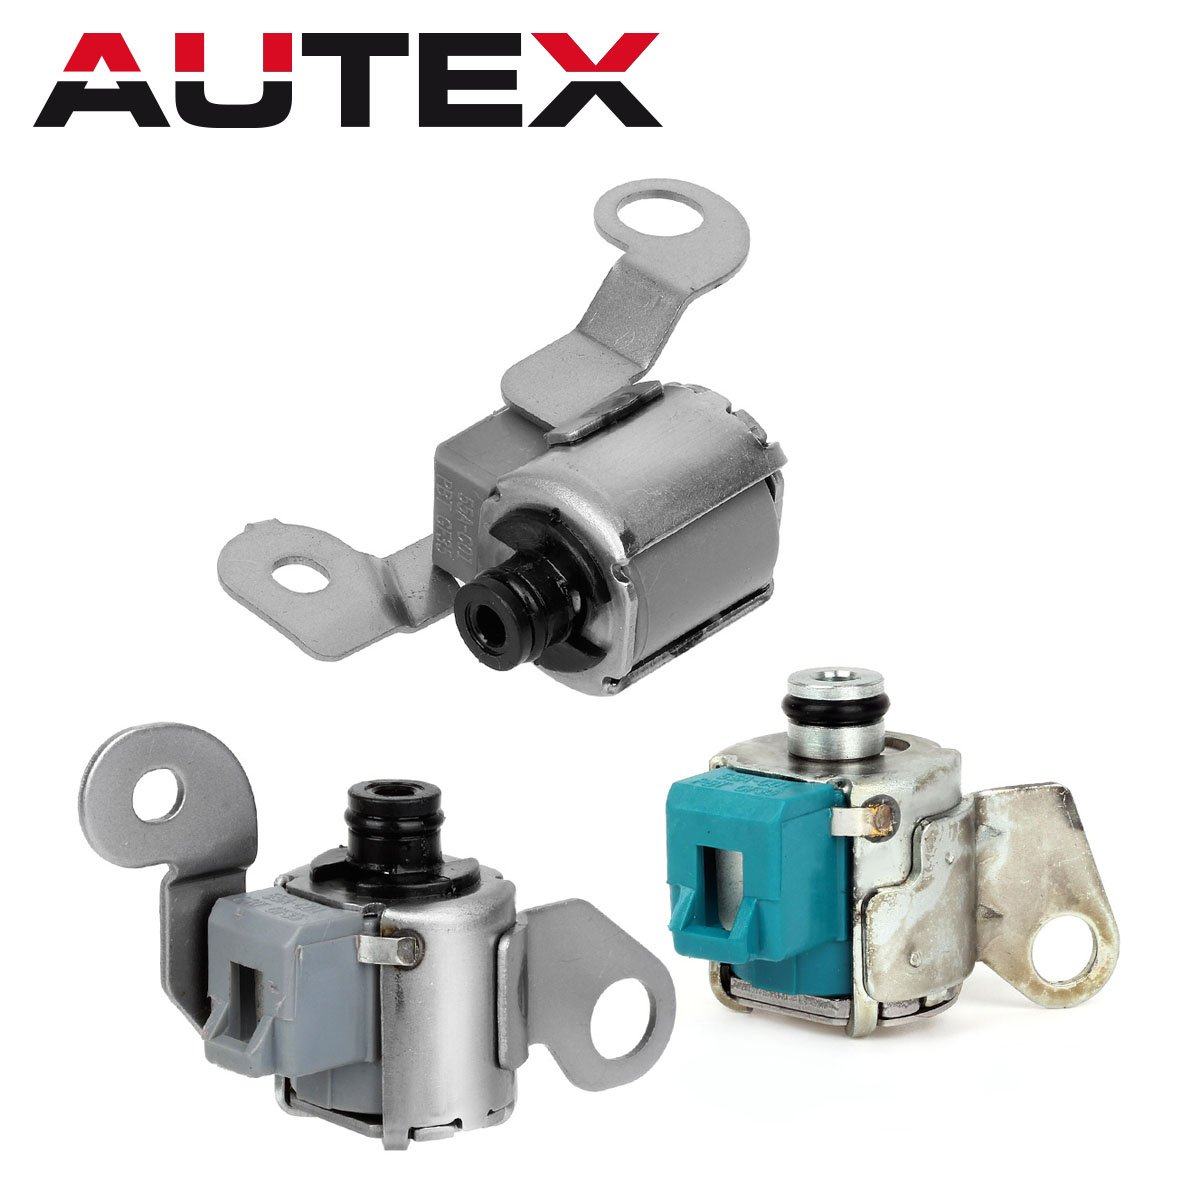 AUTEX A340E A343F Shift Solenoid 8542030110 Compatible With Lexus LX470 & Toyota Land Cruiser 2000-2002/Toyota 4 Runner & Tacoma 2000 2001 2002 2003 2004/Toyota Tundra & Sequoia 2001 2002 2003 2004